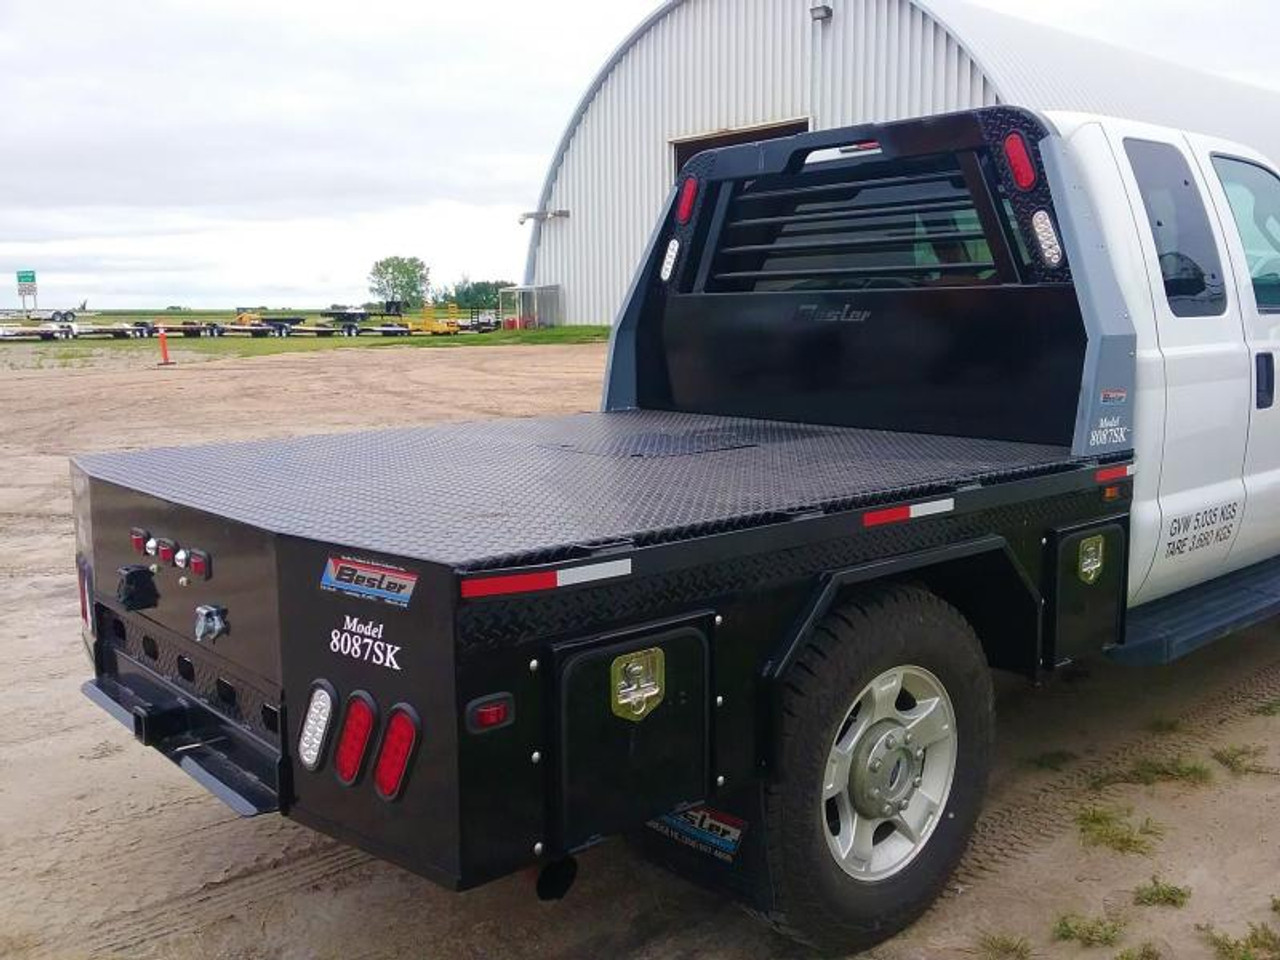 Besler Truck Bed - Series 8000